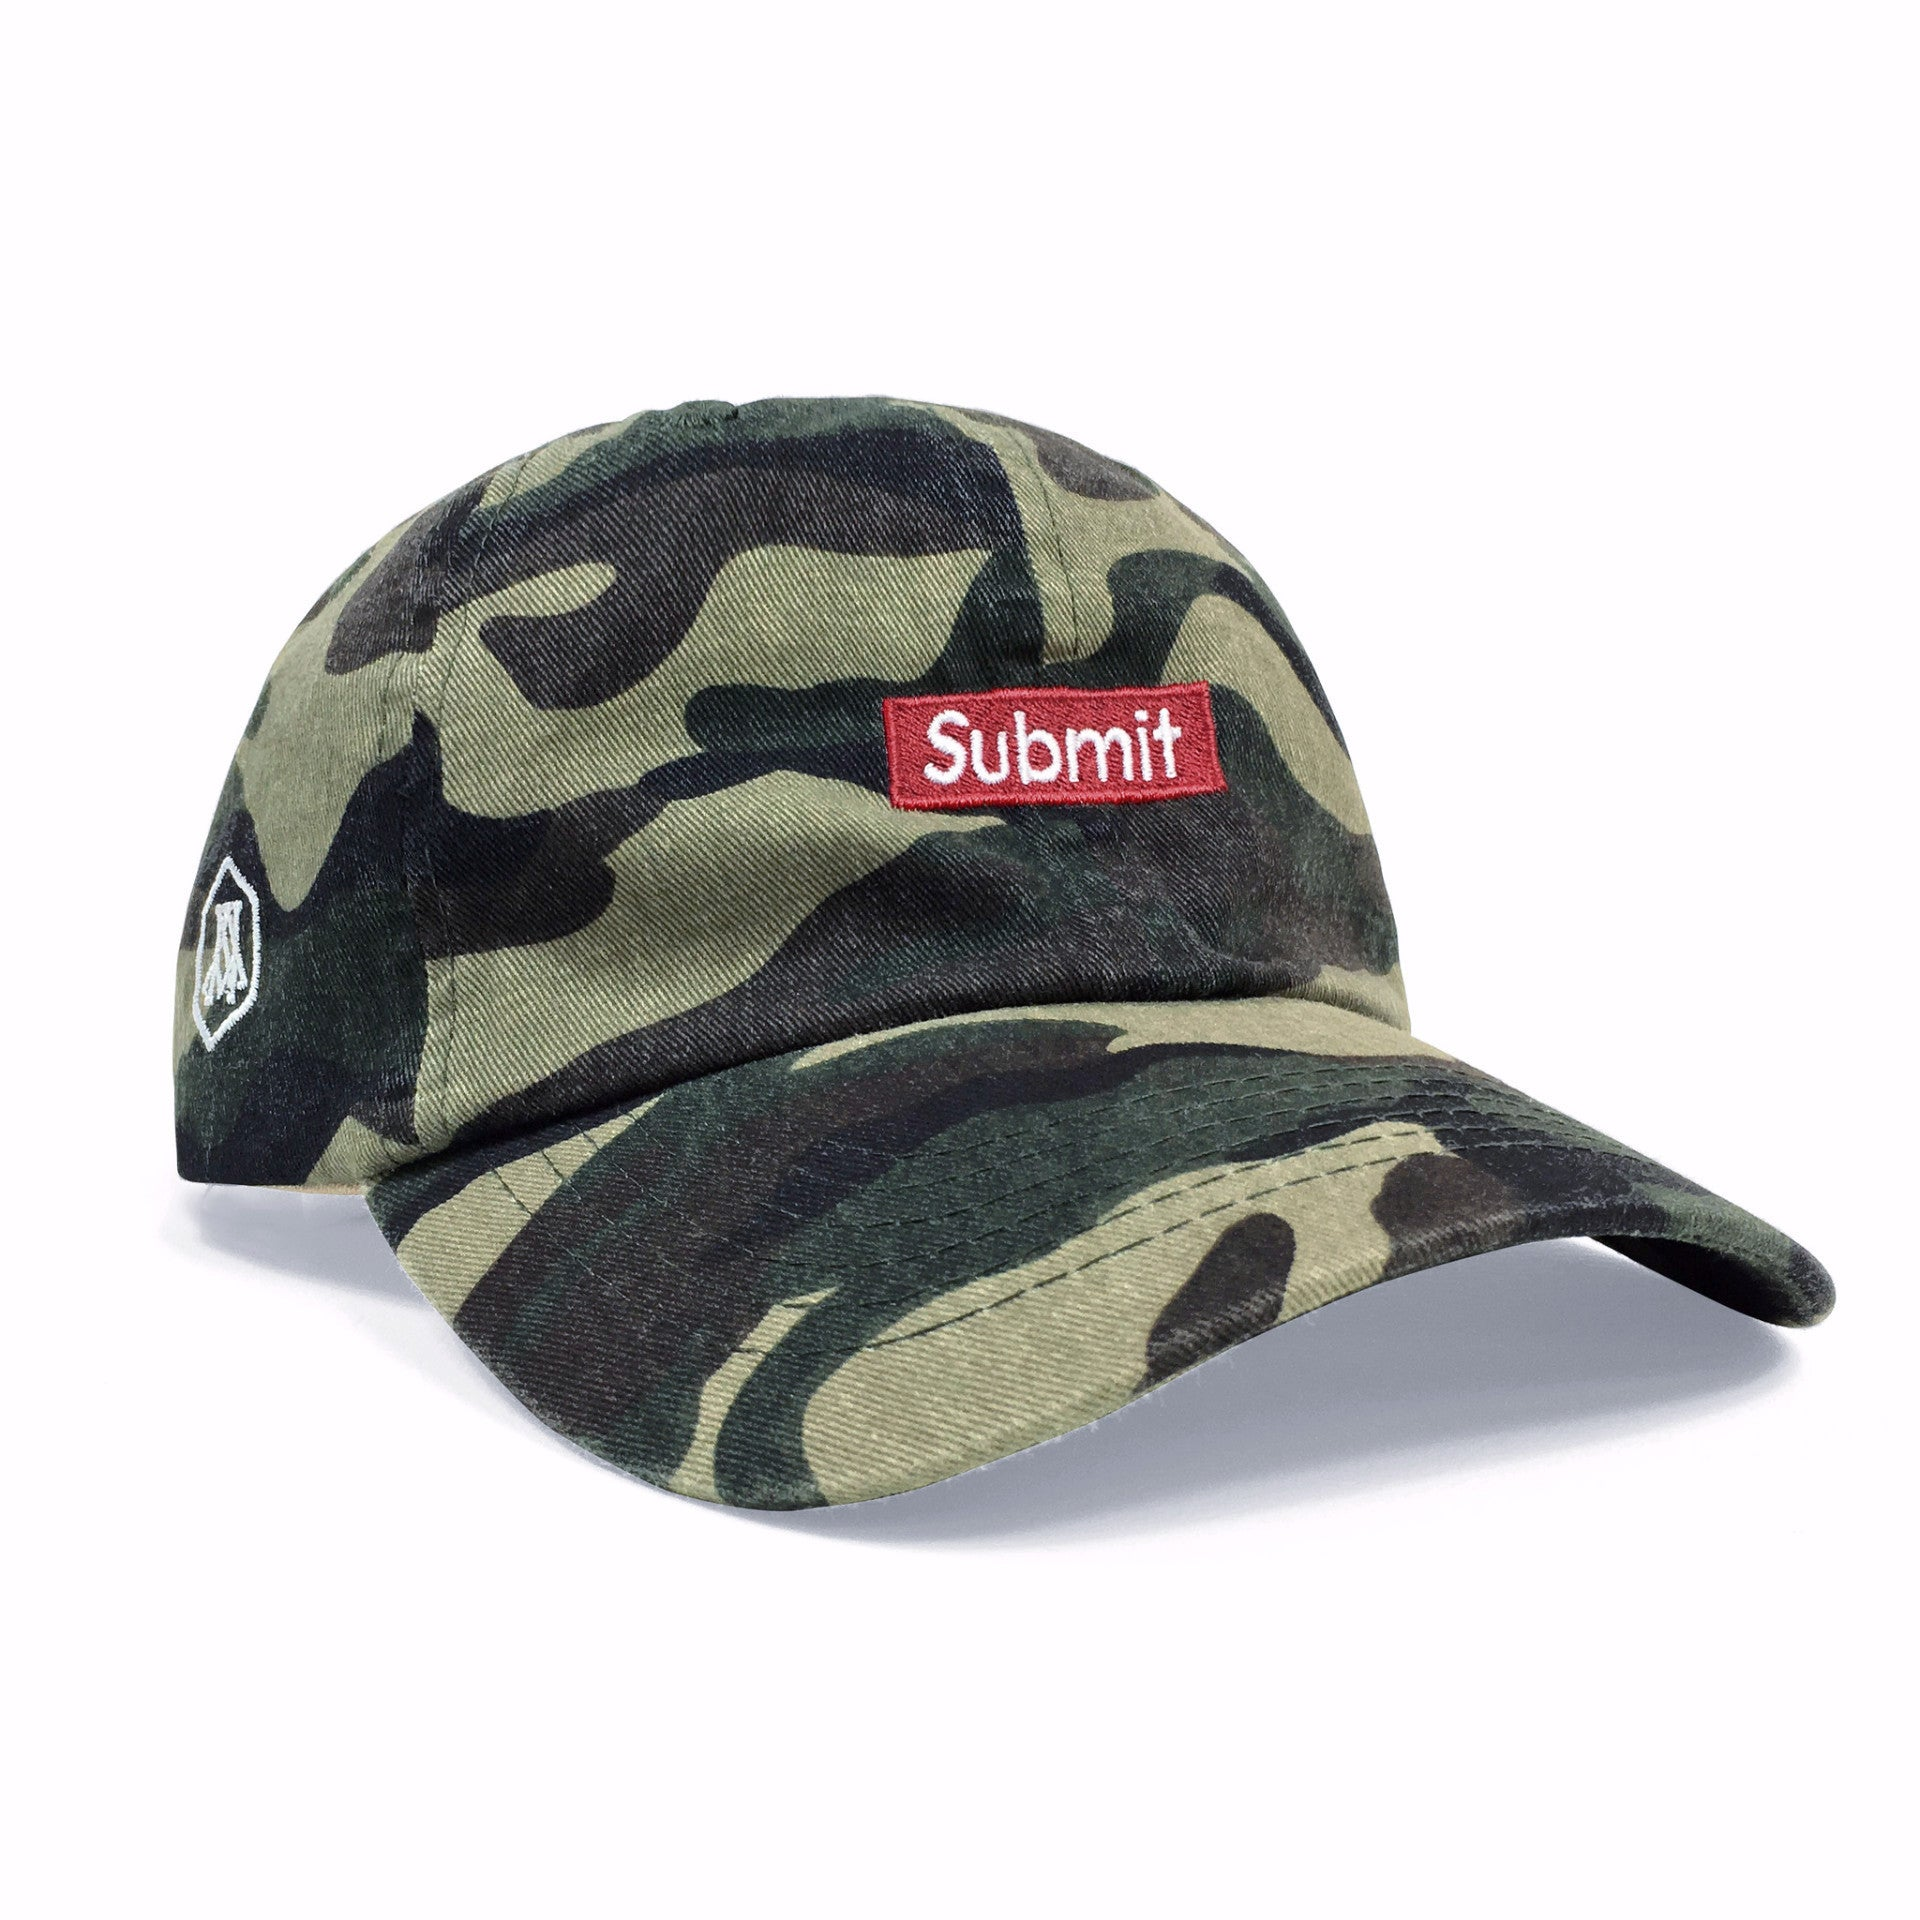 Submit (Camo Dad Hat)